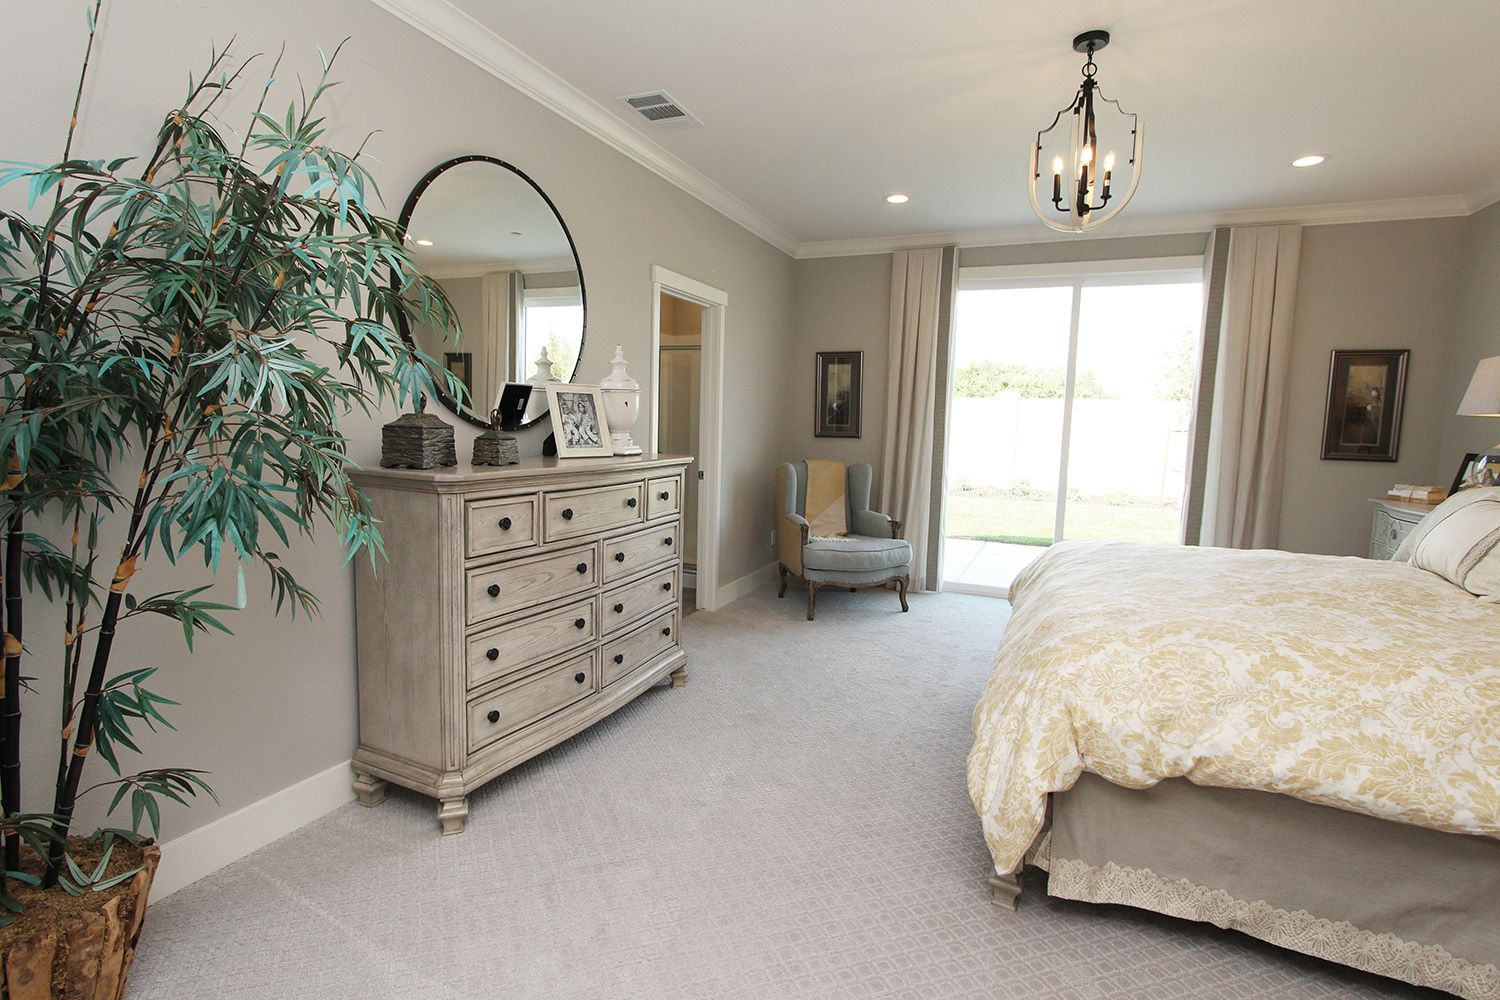 Bedroom featured in The Montara By Anderson Homes in Merced, CA